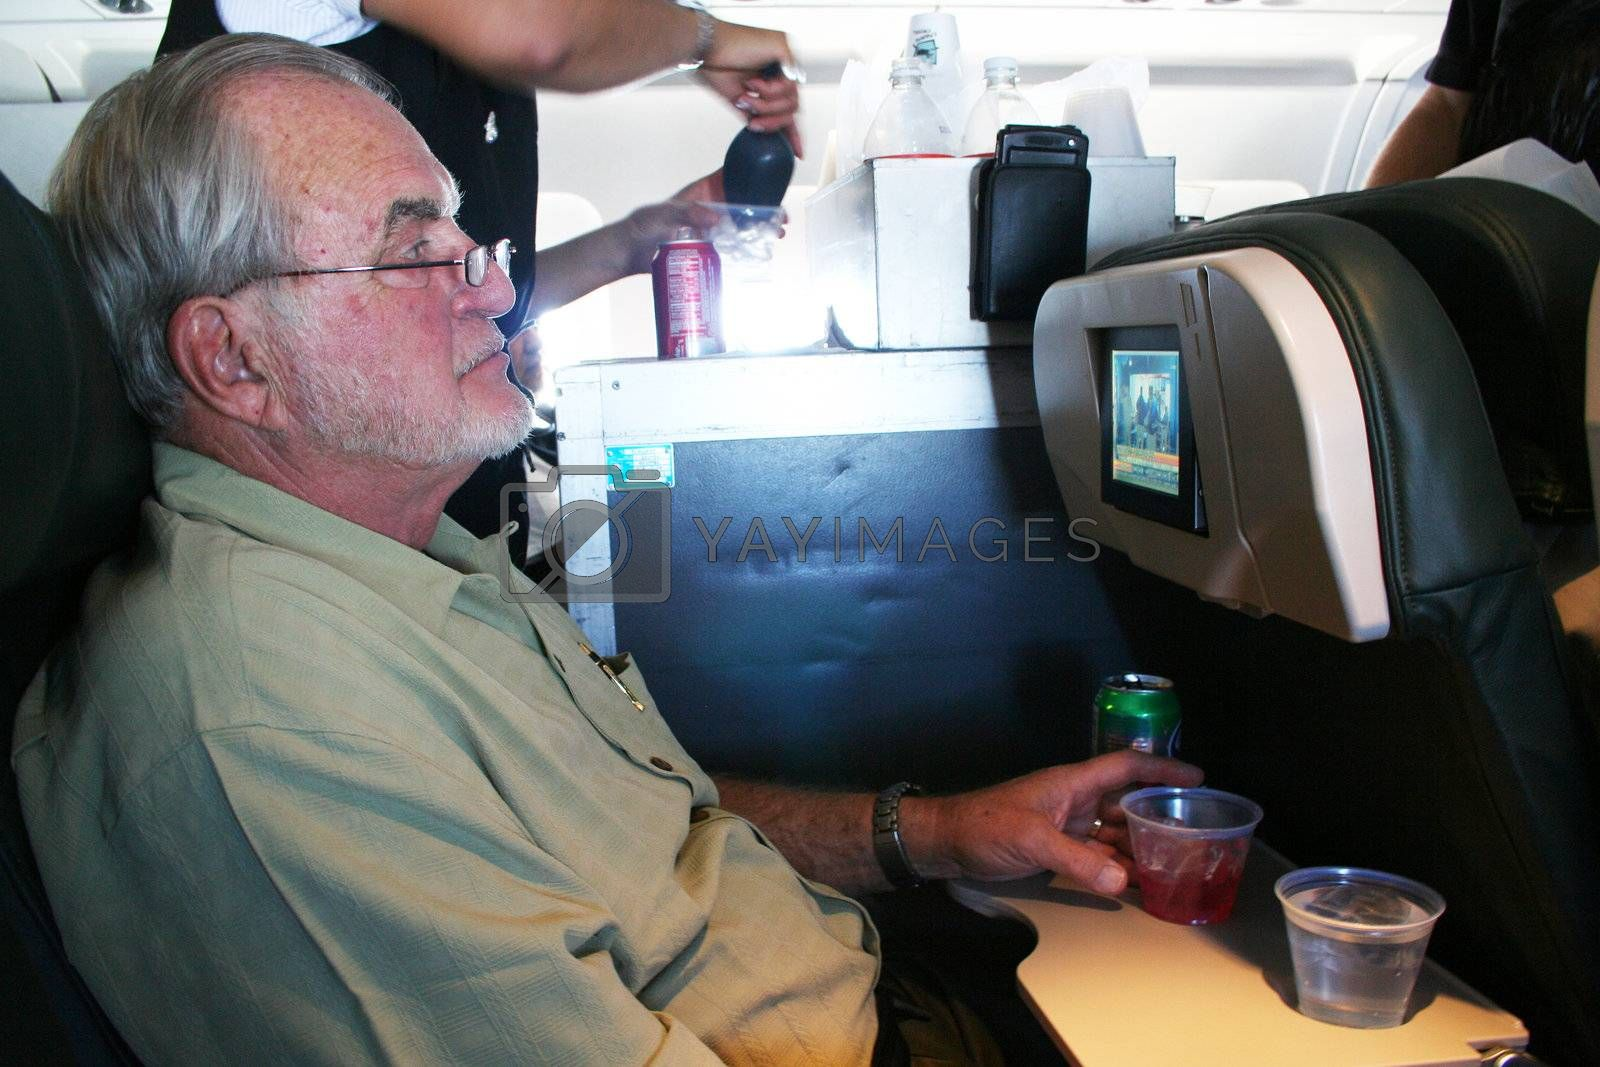 Man on airplane with stuartess serving drinks